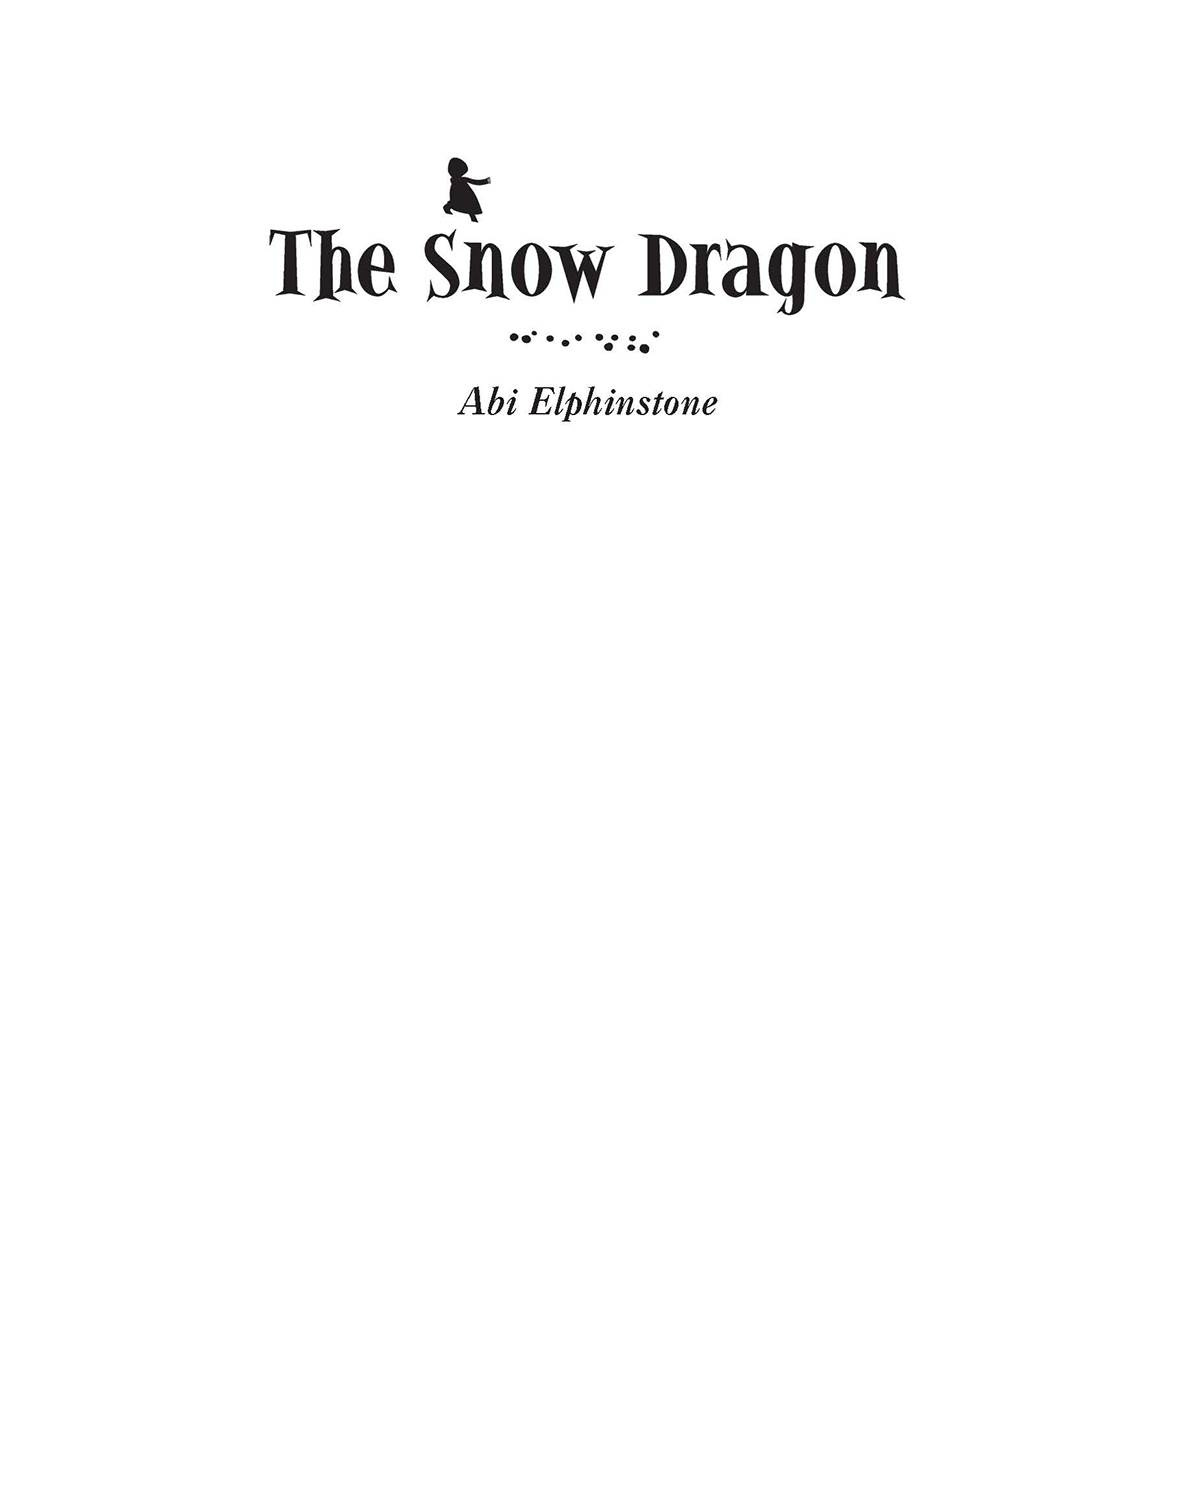 The Snow Dragon extract